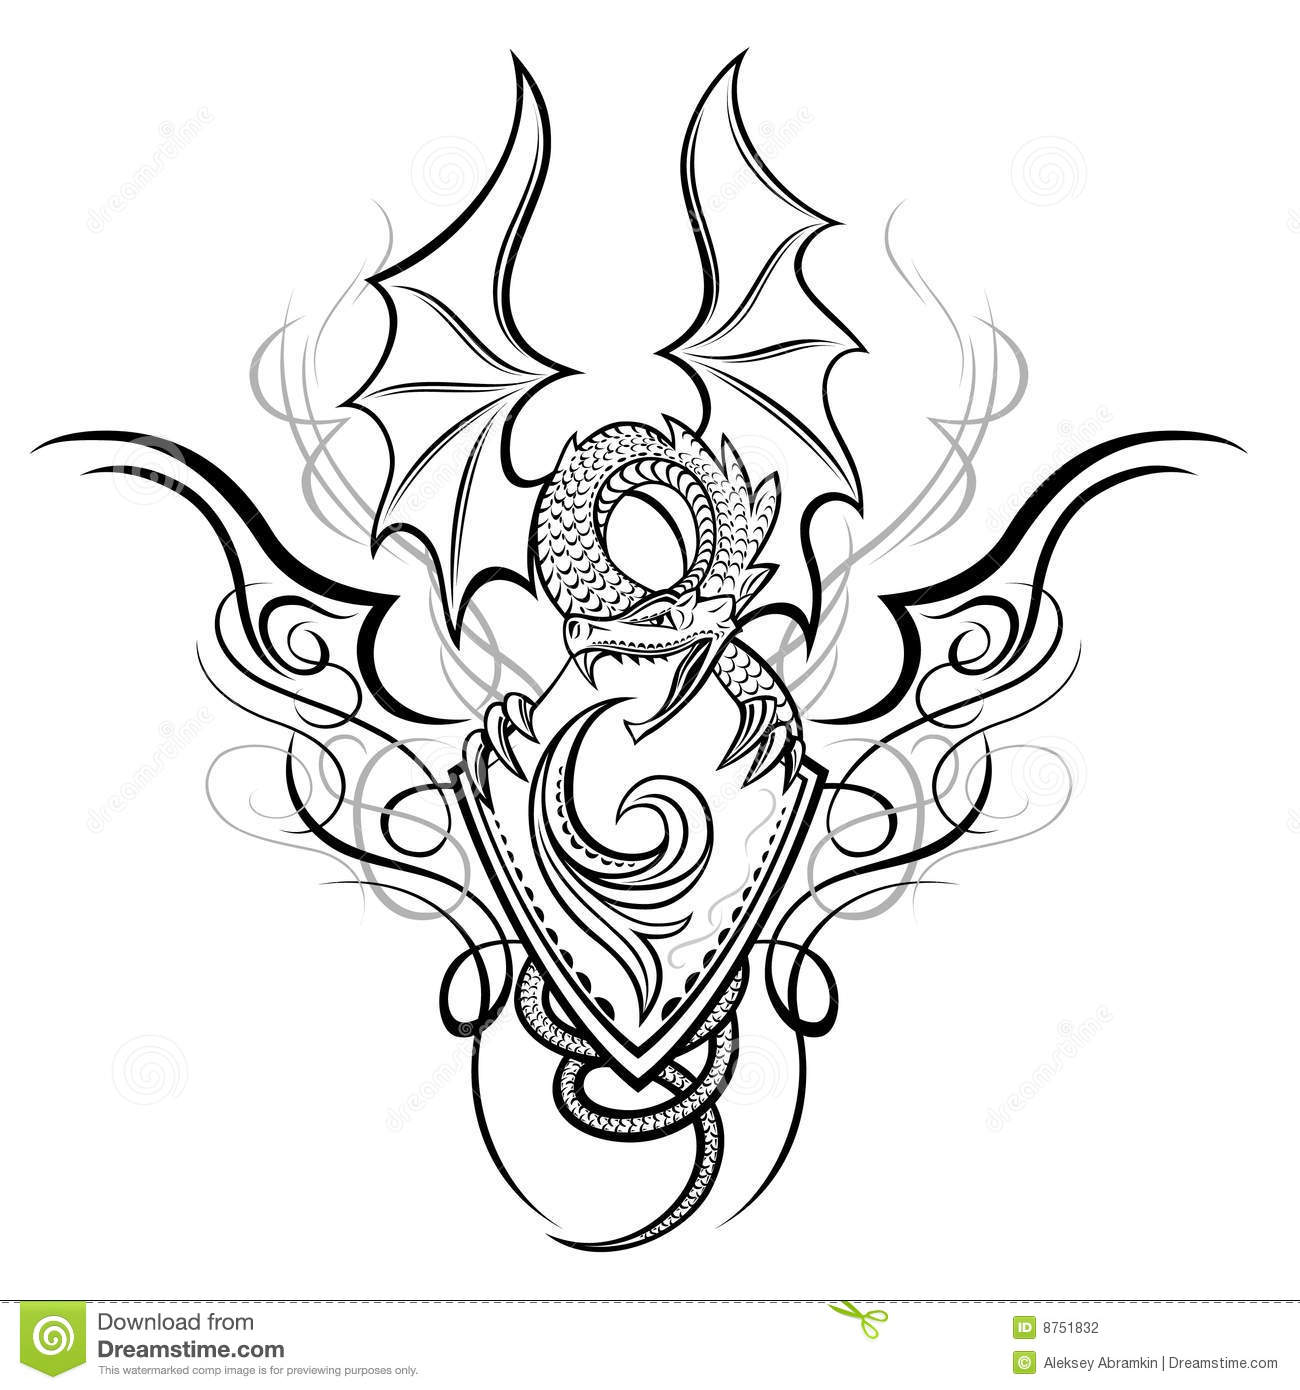 Fashion Sketchbook likewise Rorschach likewise Stock Photography Fanyasy Dragon Insignia Image8751832 together with Bull likewise Flag Printables. on coat drawing